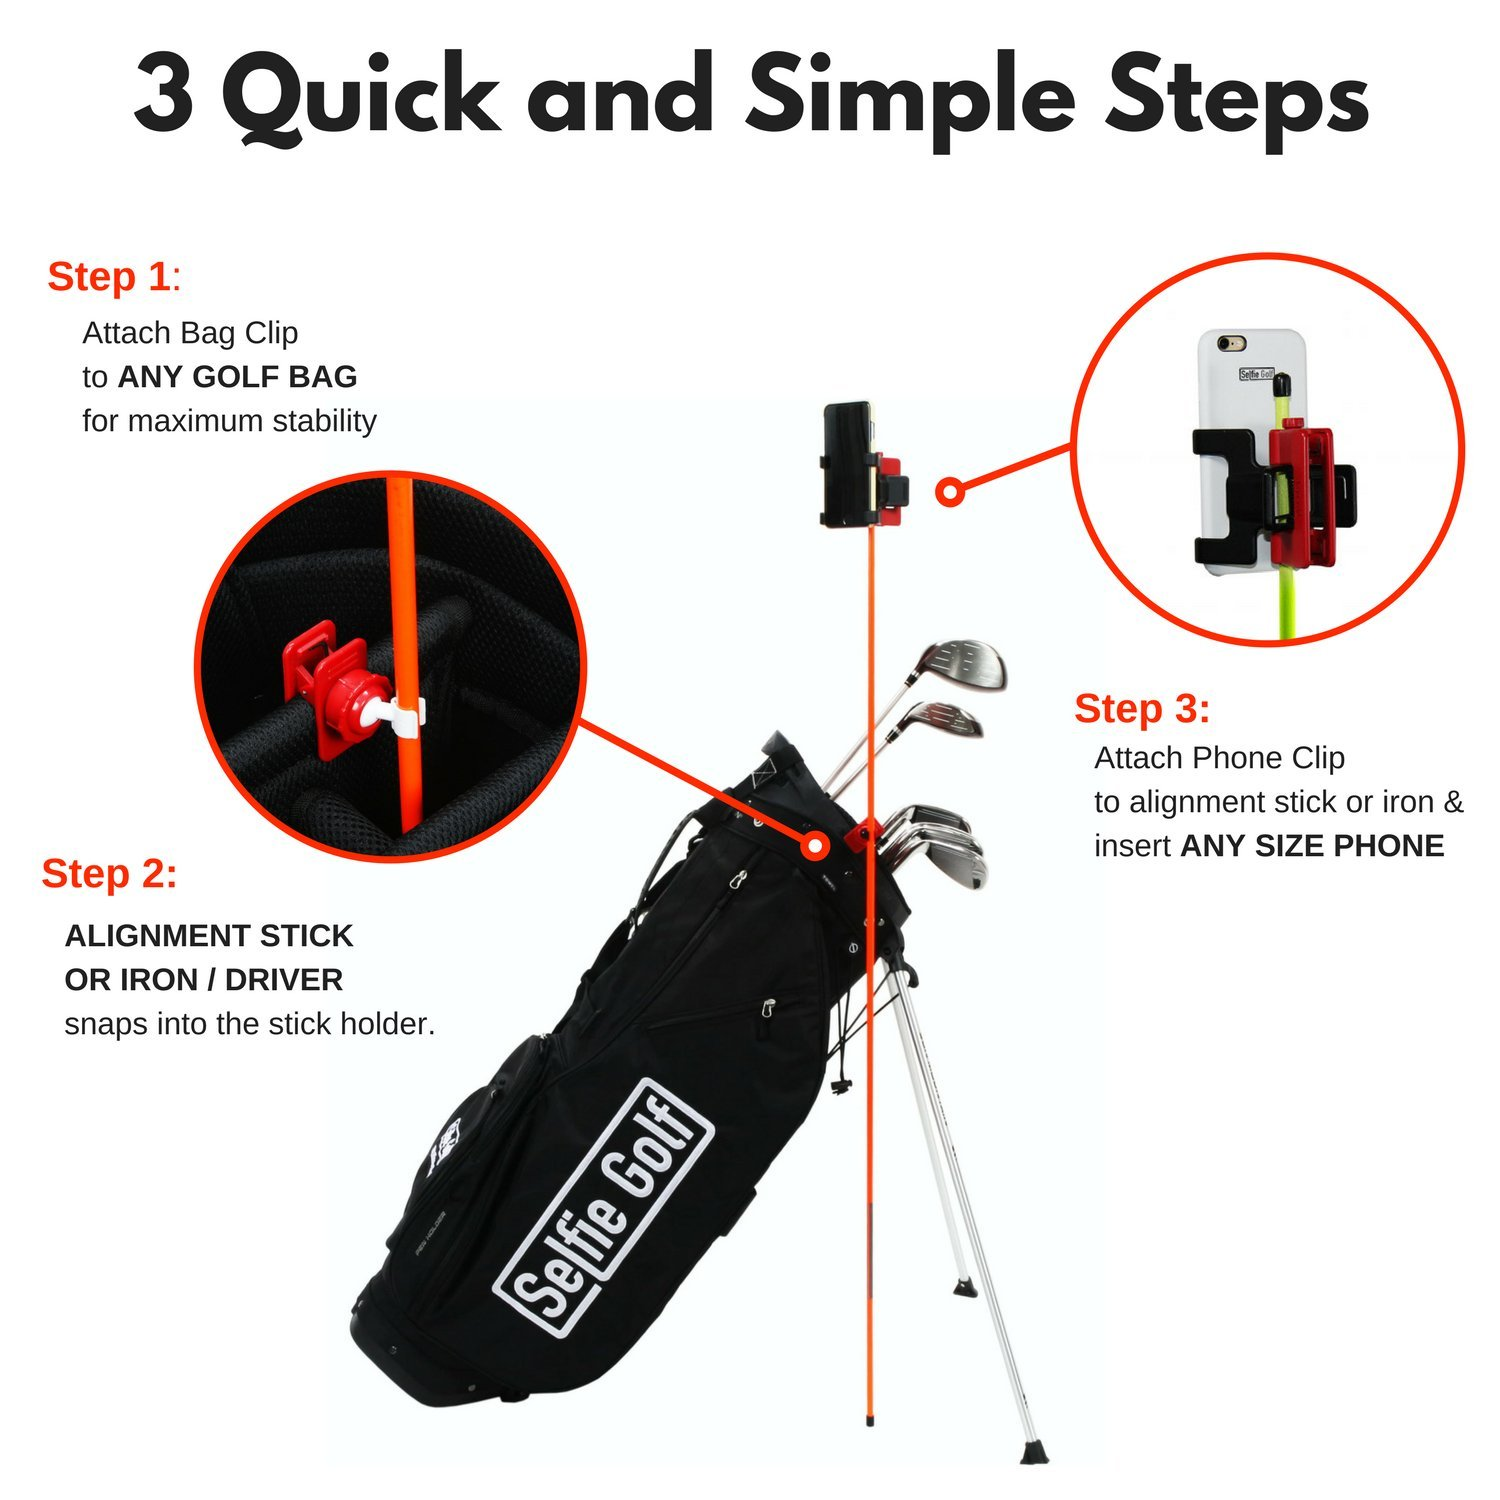 Record Golf Swing - Cell Phone Clip Holder and Training Aid by SelfieGOLF TM - Golf Accessories | The Winner of The PGA Best of 2017 | Compatible with Any Smart Phone (Red/Black) by Selfie Golf (Image #4)